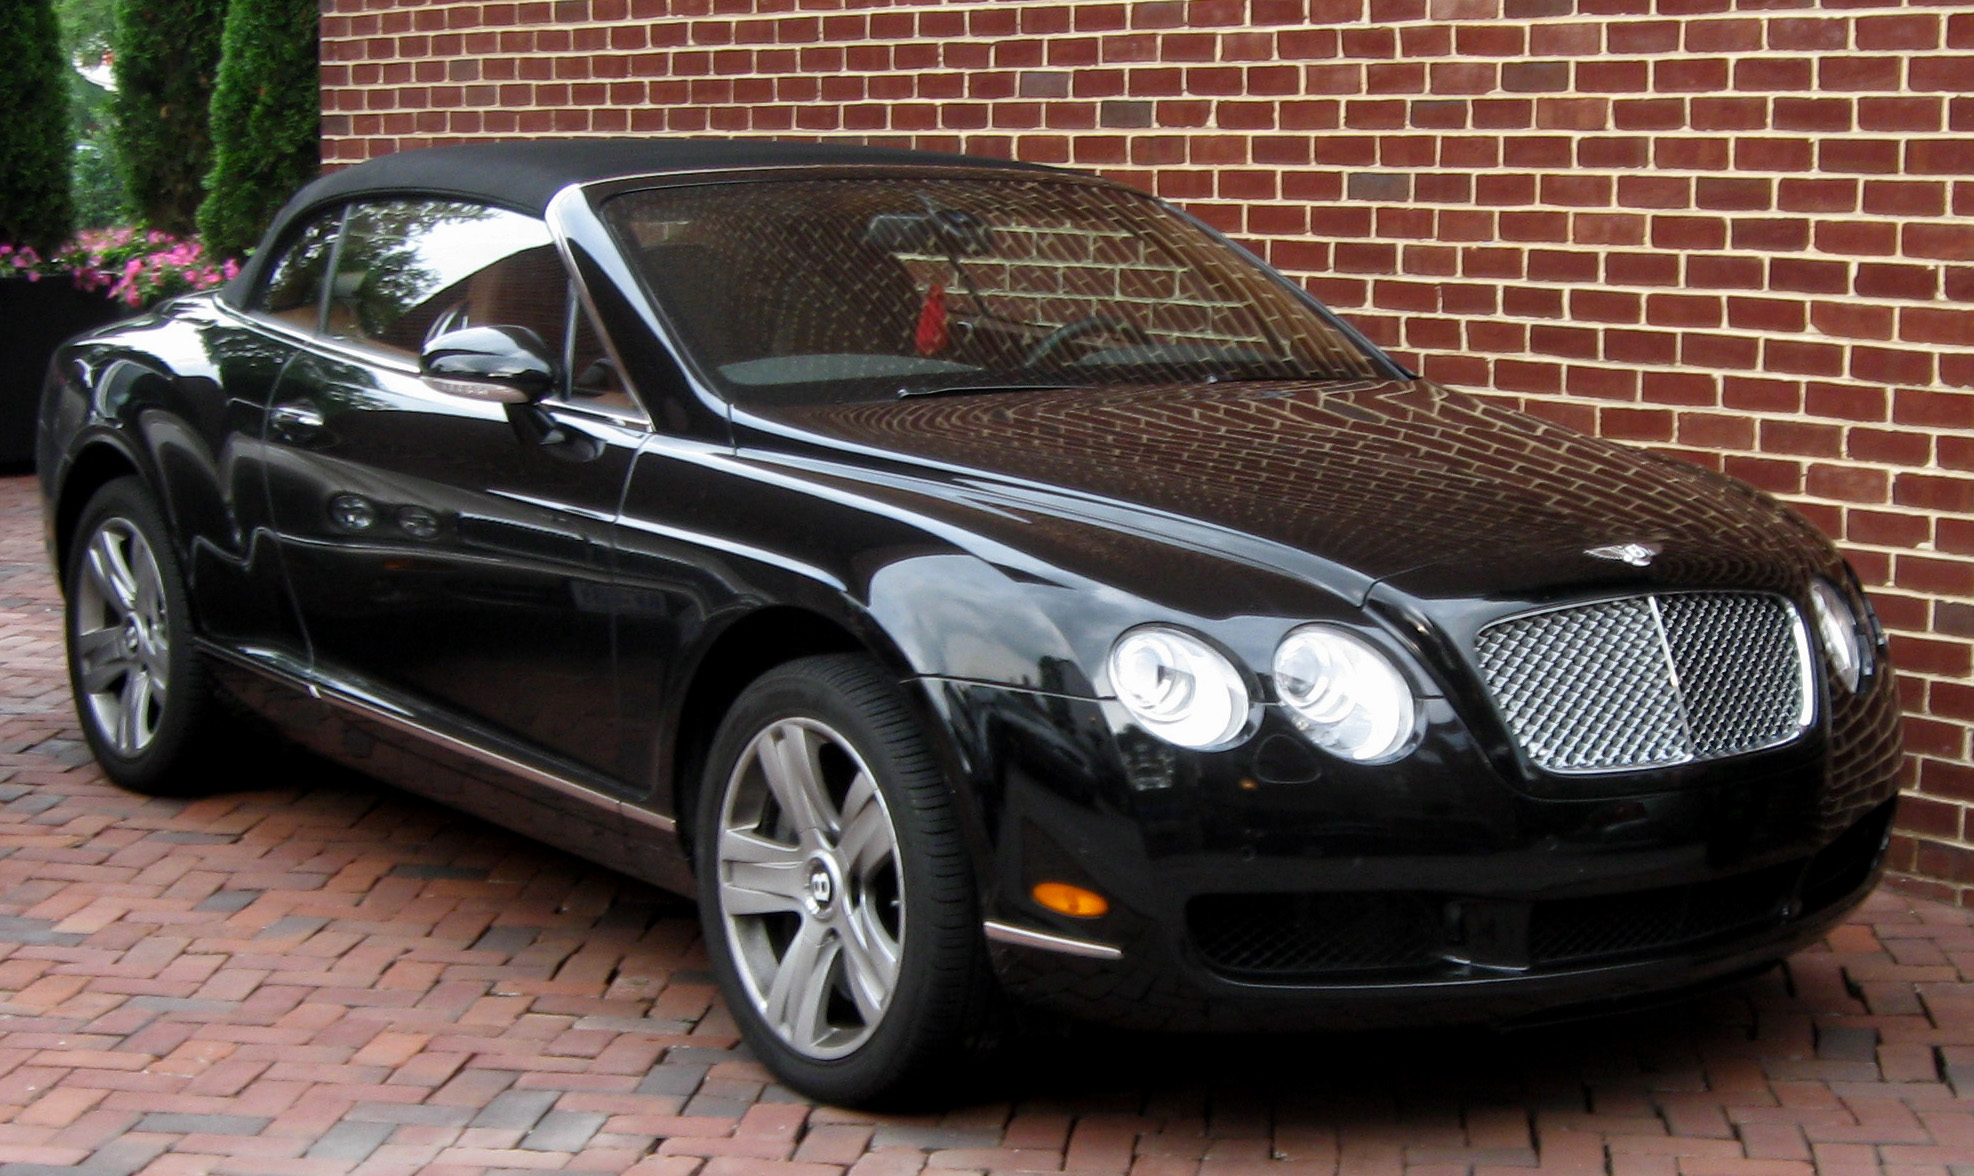 nj for gt continental englewood model bentley make in gts vehicle sale img listings image